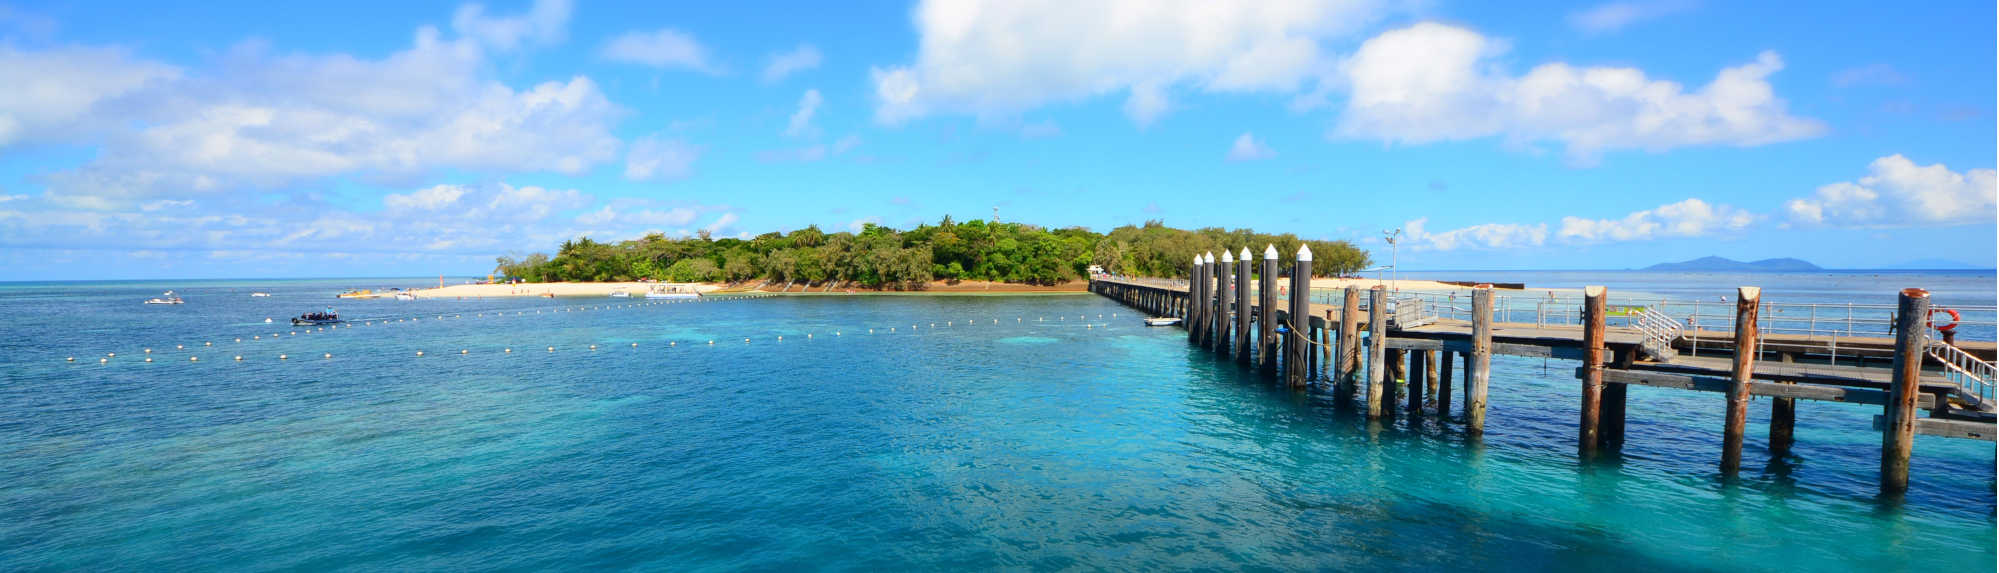 Best Places to see the Great Barrier Reef